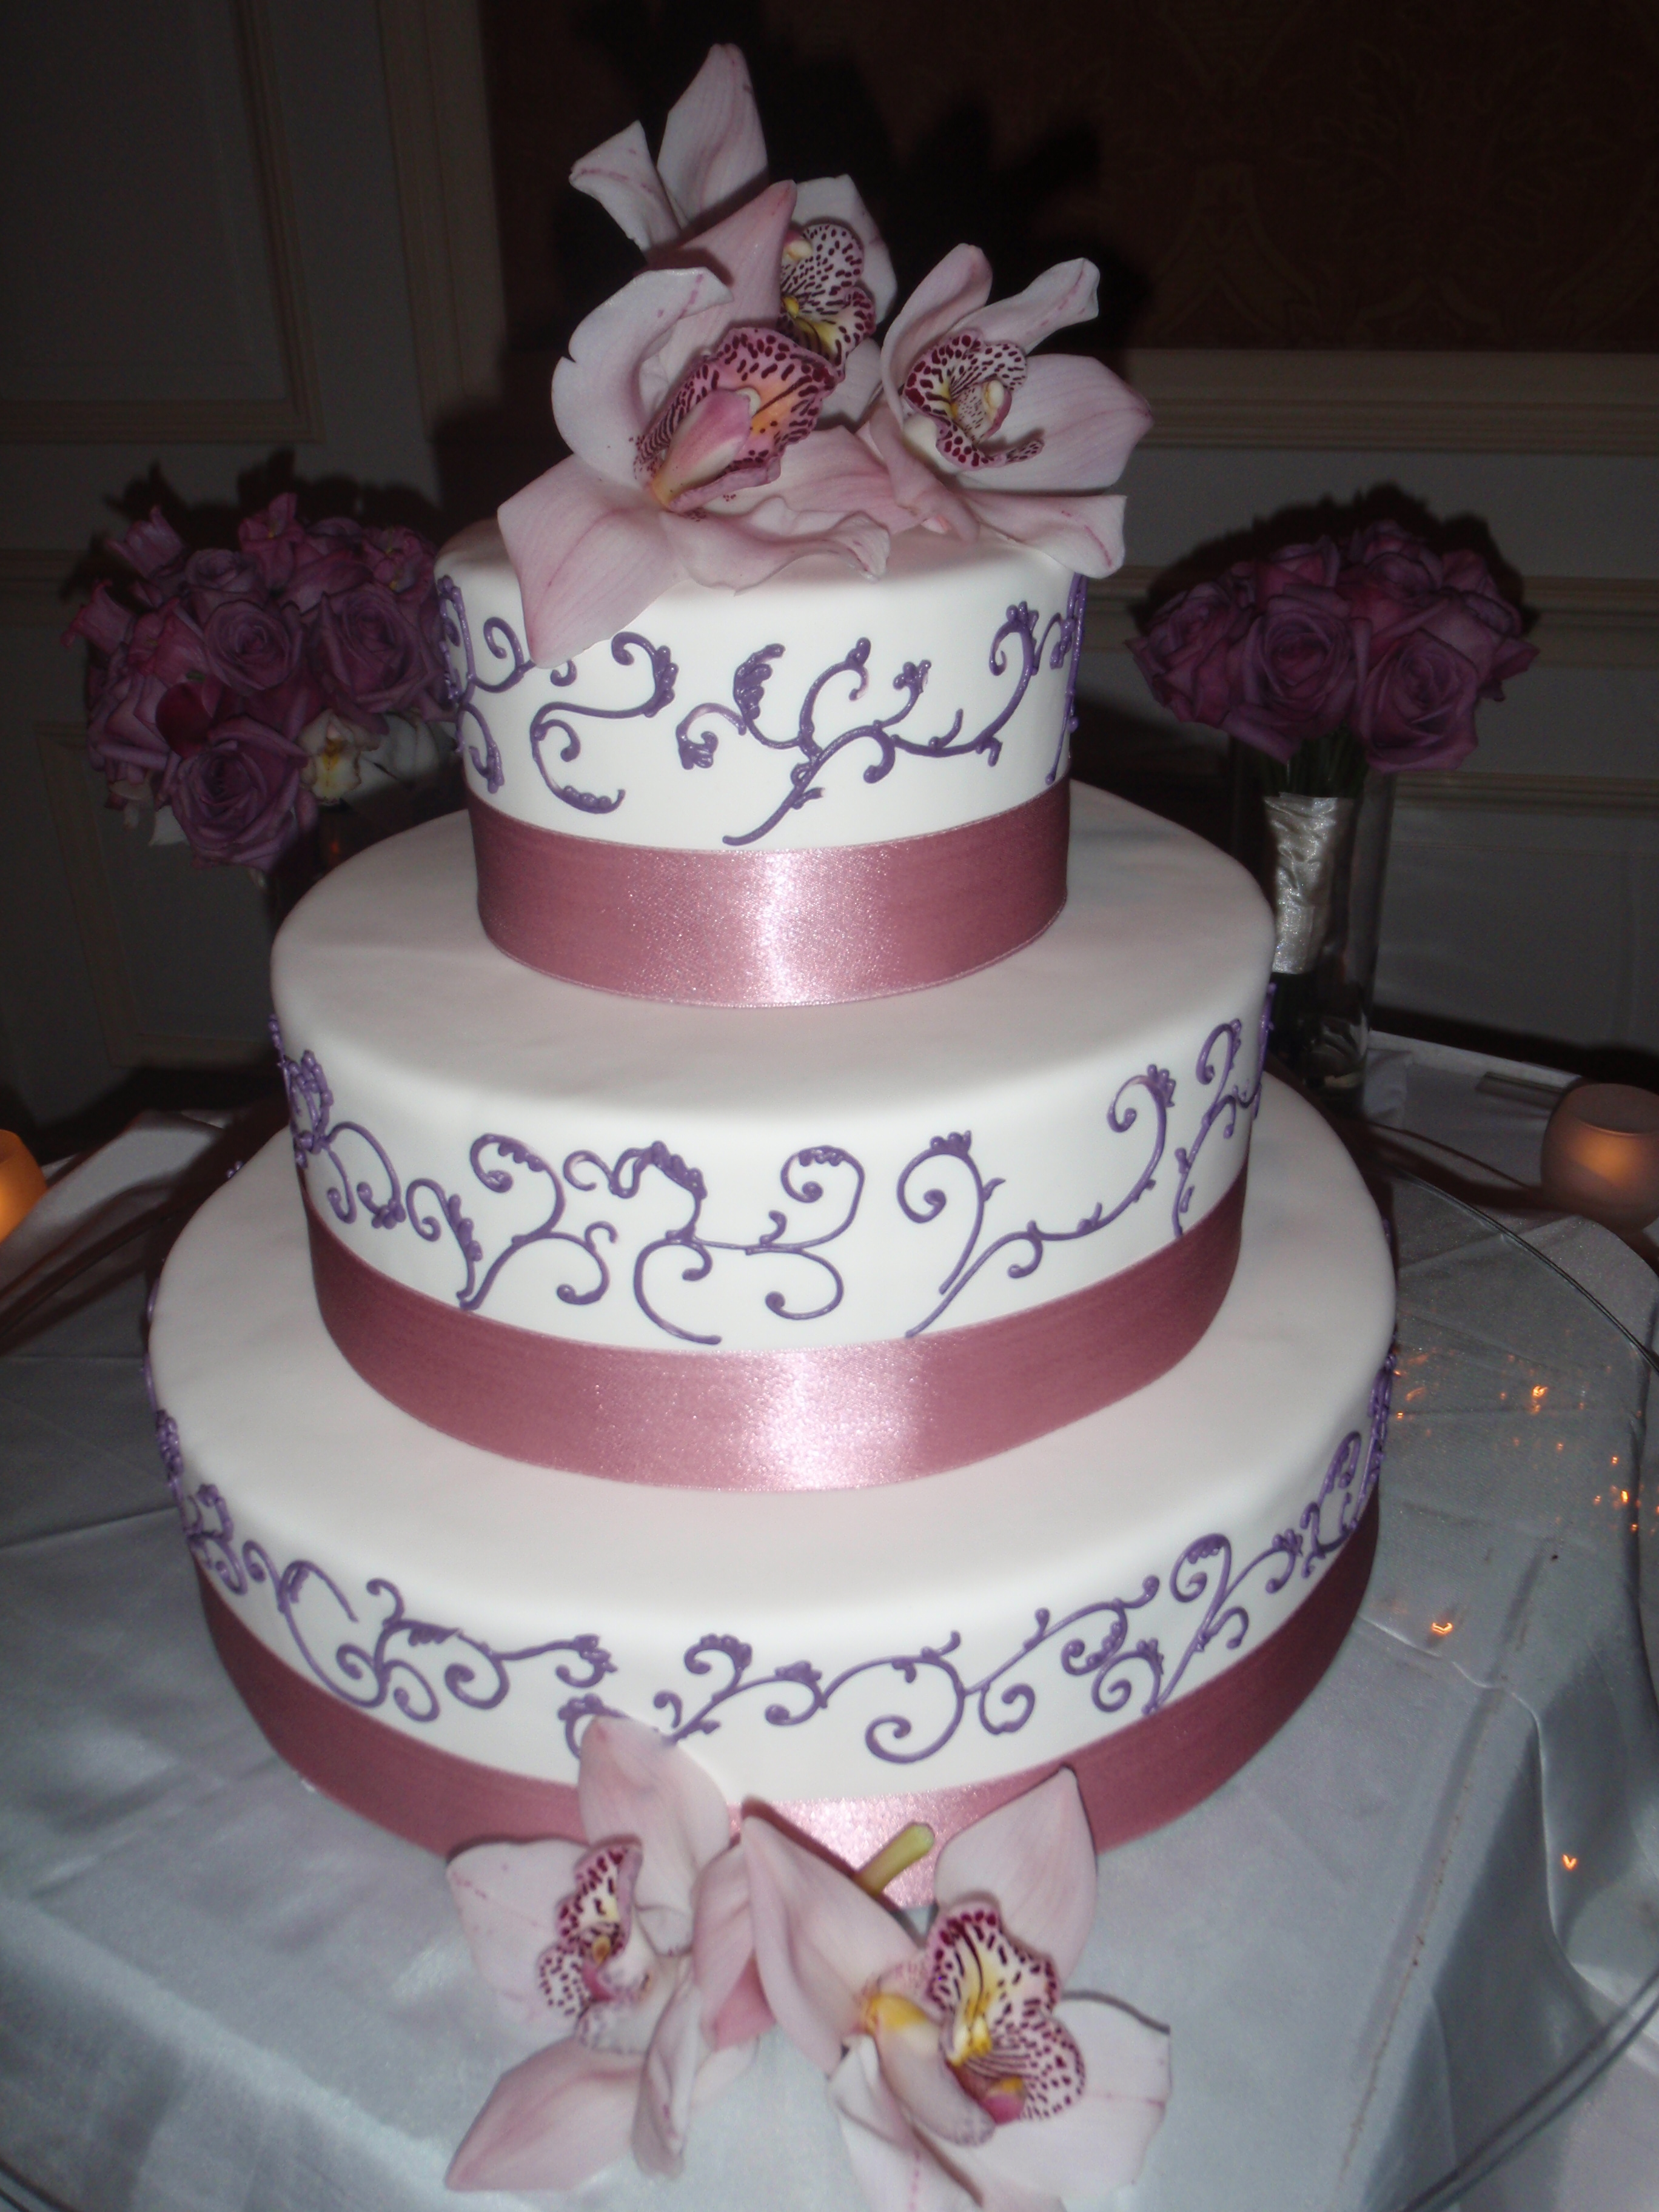 Reception, Flowers & Decor, Cakes, pink, purple, cake, Orchids